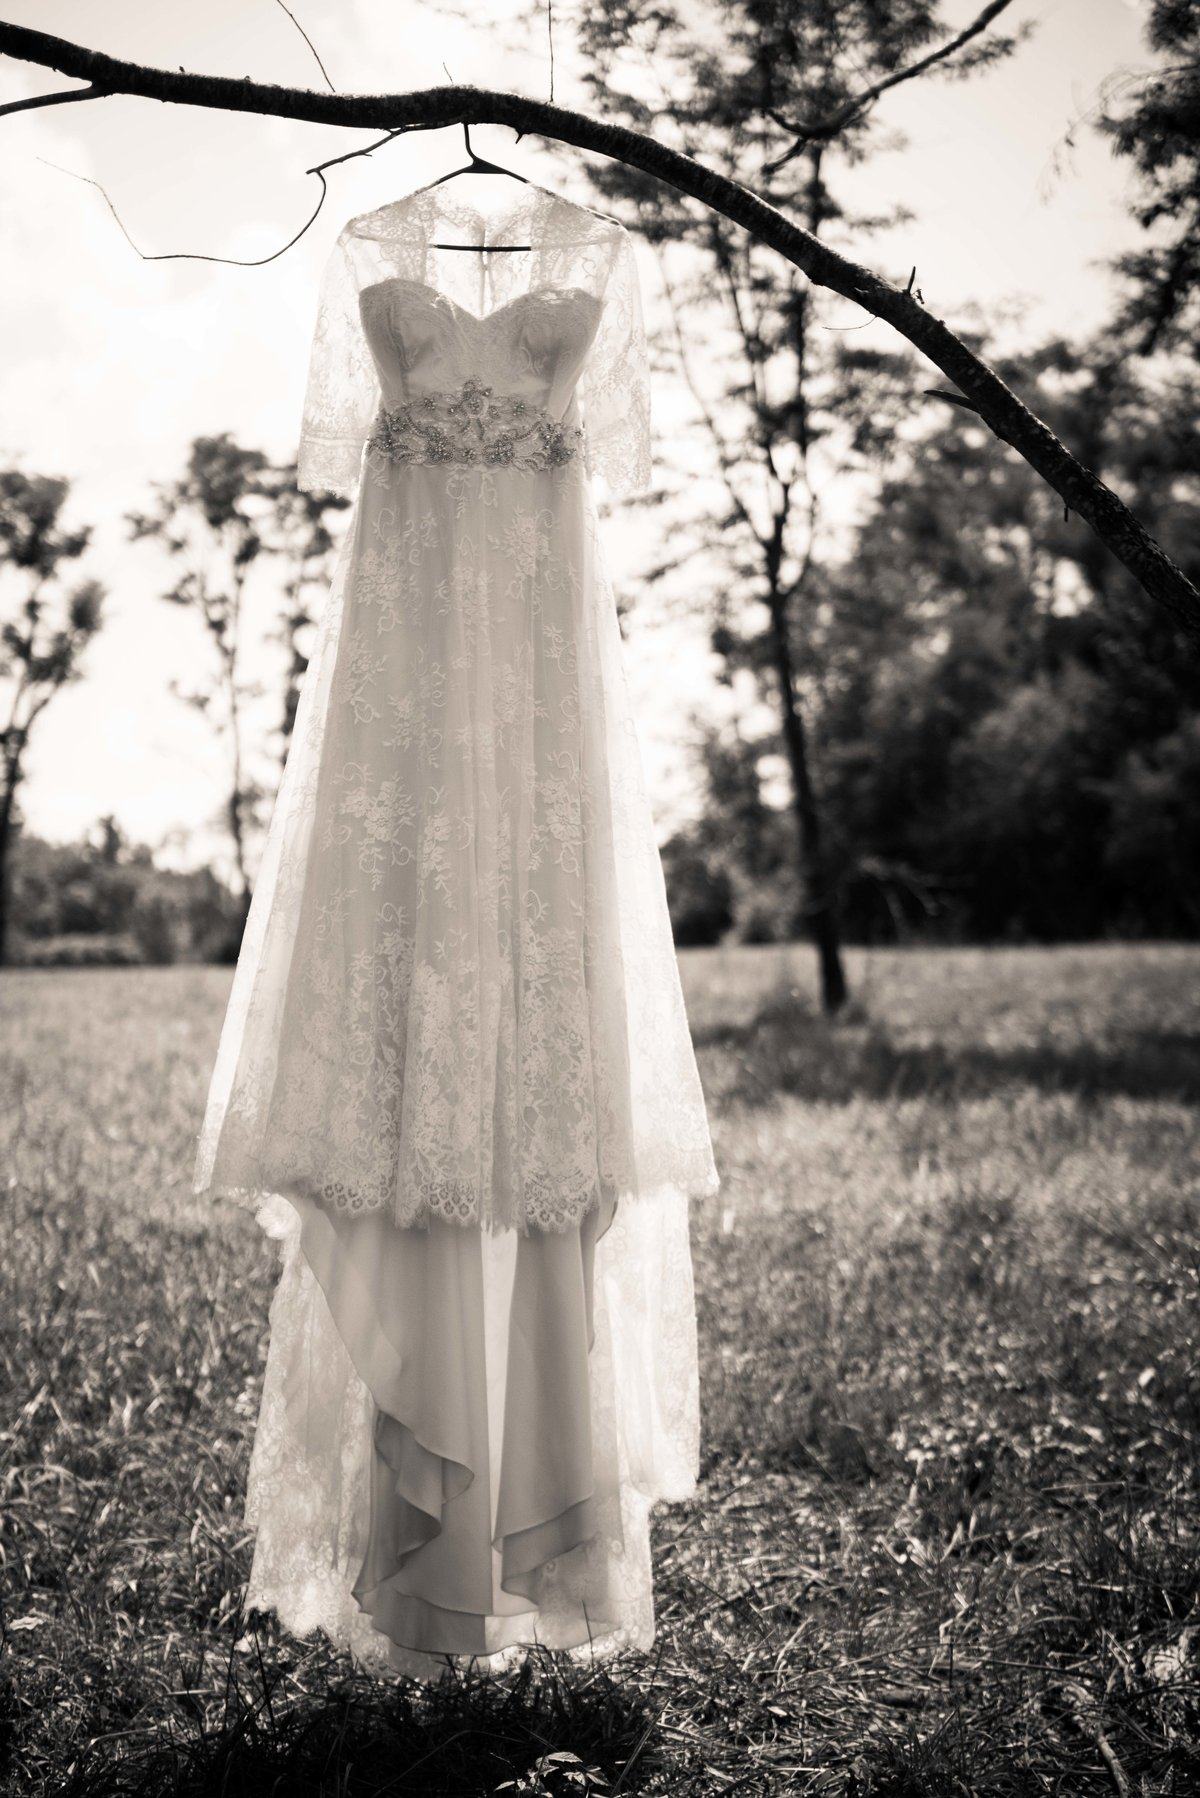 Wedding dress detail, hanging, Hocking Hills OH.